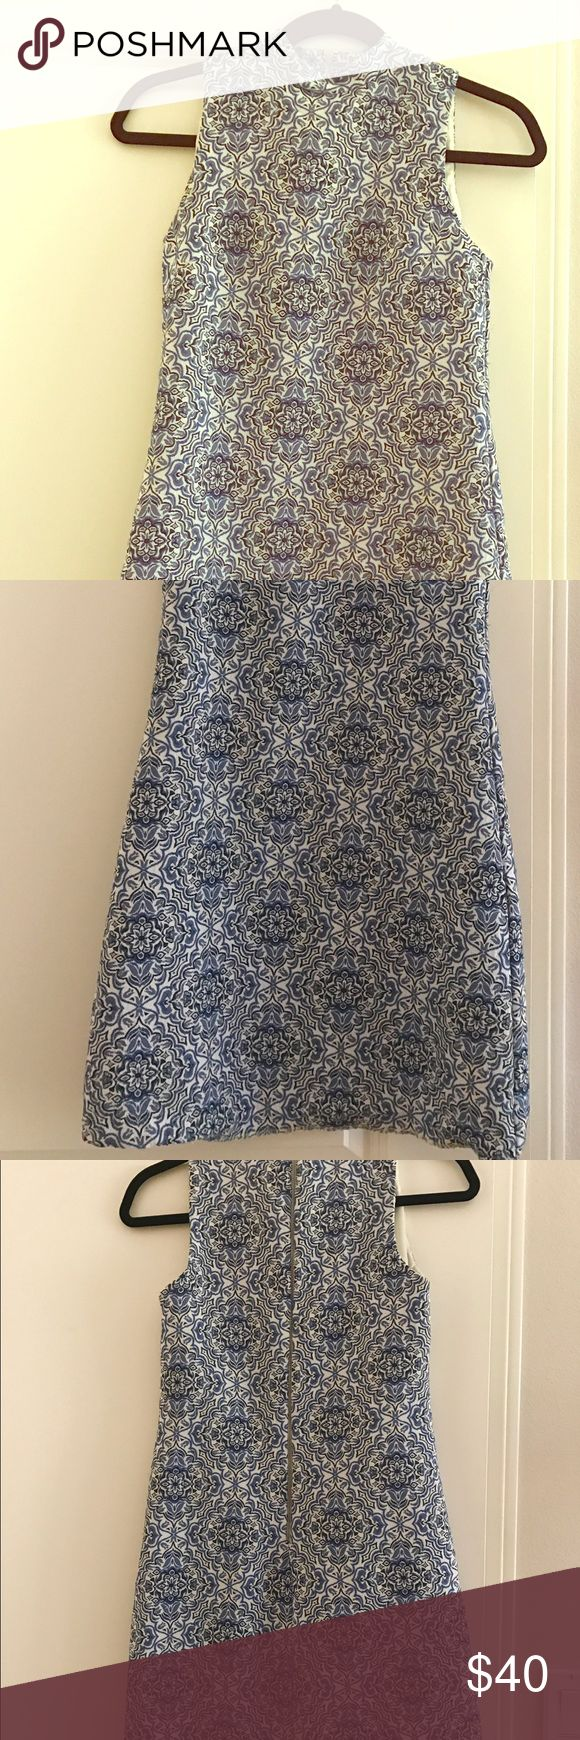 Taylor sleeveless geo print shift dress size 4 Taylor sleeveless geo print shift dress. Barely used and in good condition. Size 4. 🚫trades. Reasonable offers only. Taylor Dresses Mini